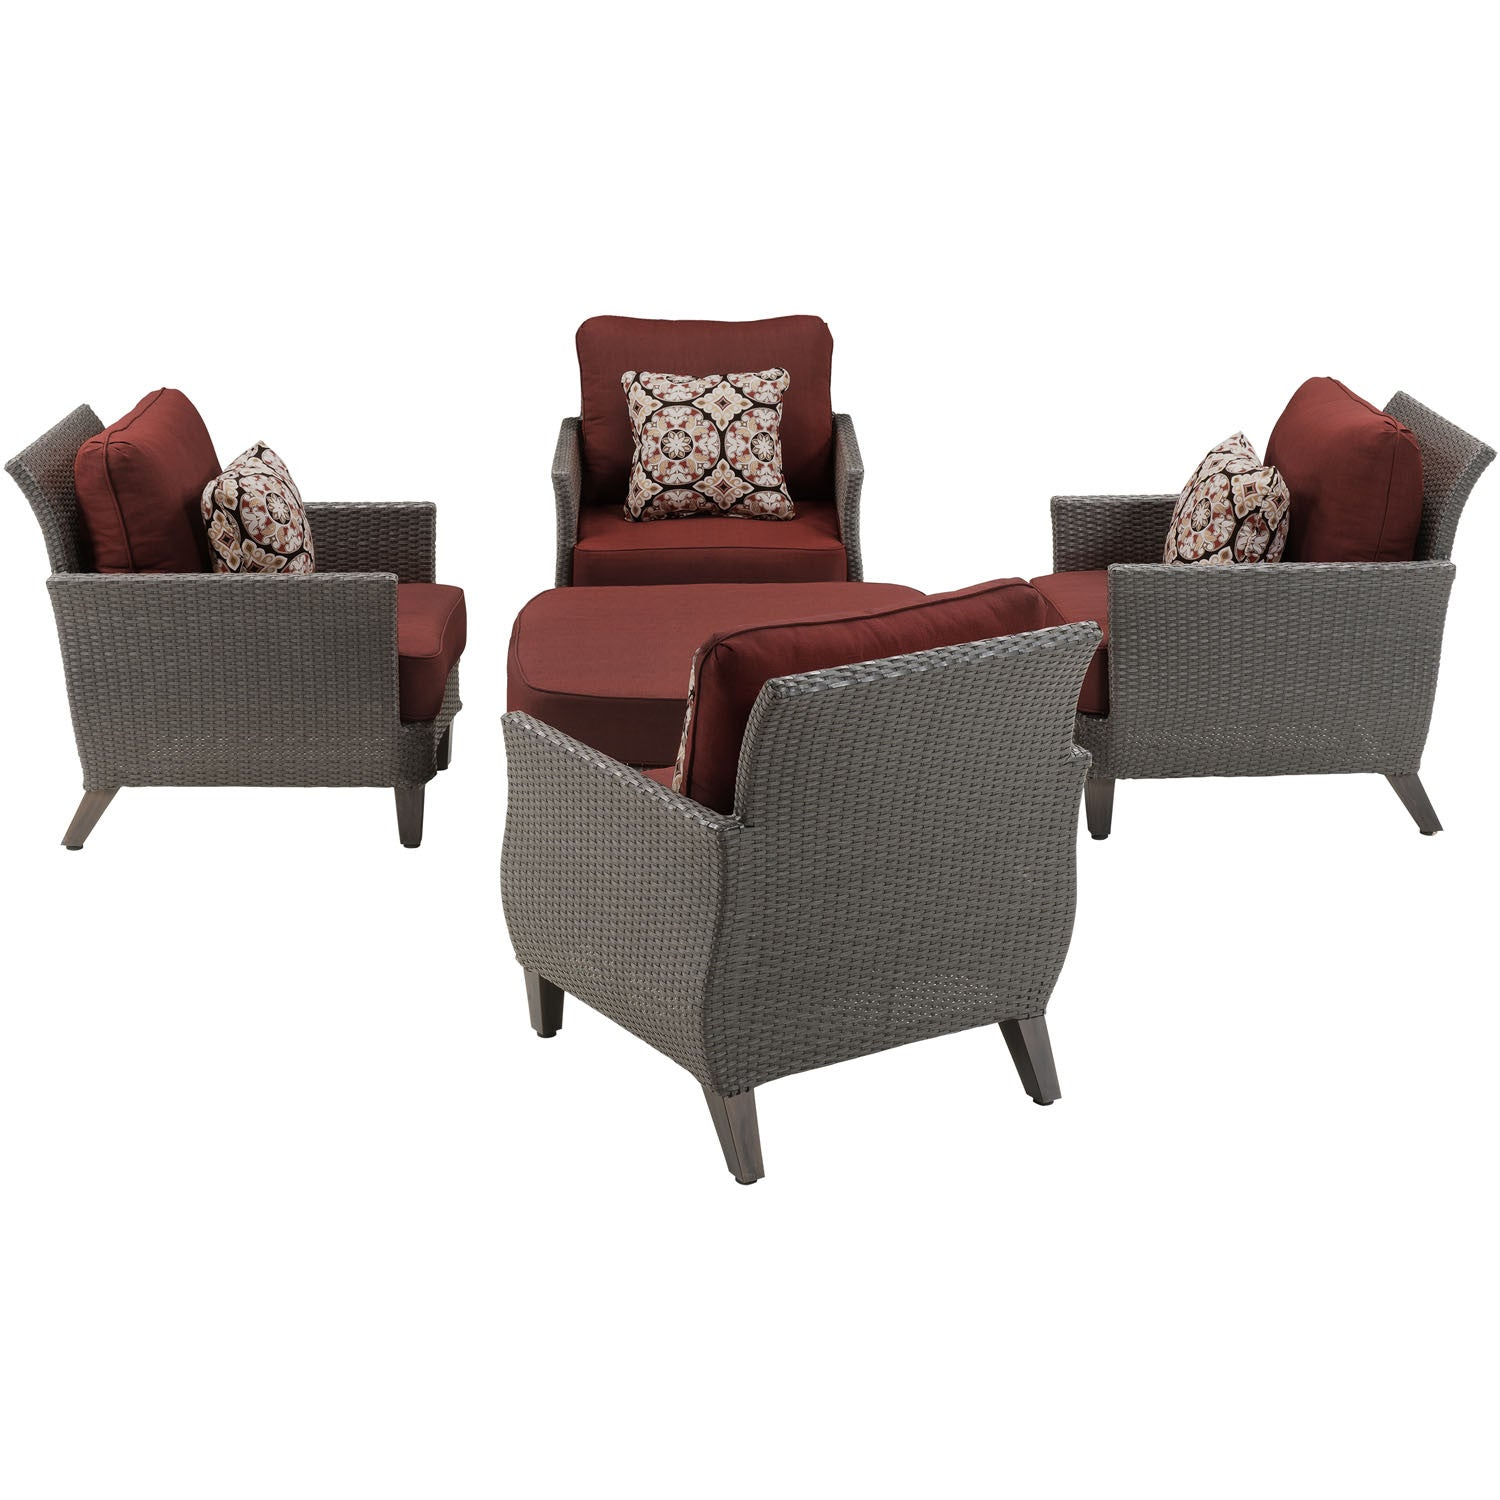 Stupendous Savannah 5Pc Seating Set 4 Oversized Chairs One Woven Cushion Ottoman Sav 5Pc Red Grey Crimson Red Bralicious Painted Fabric Chair Ideas Braliciousco